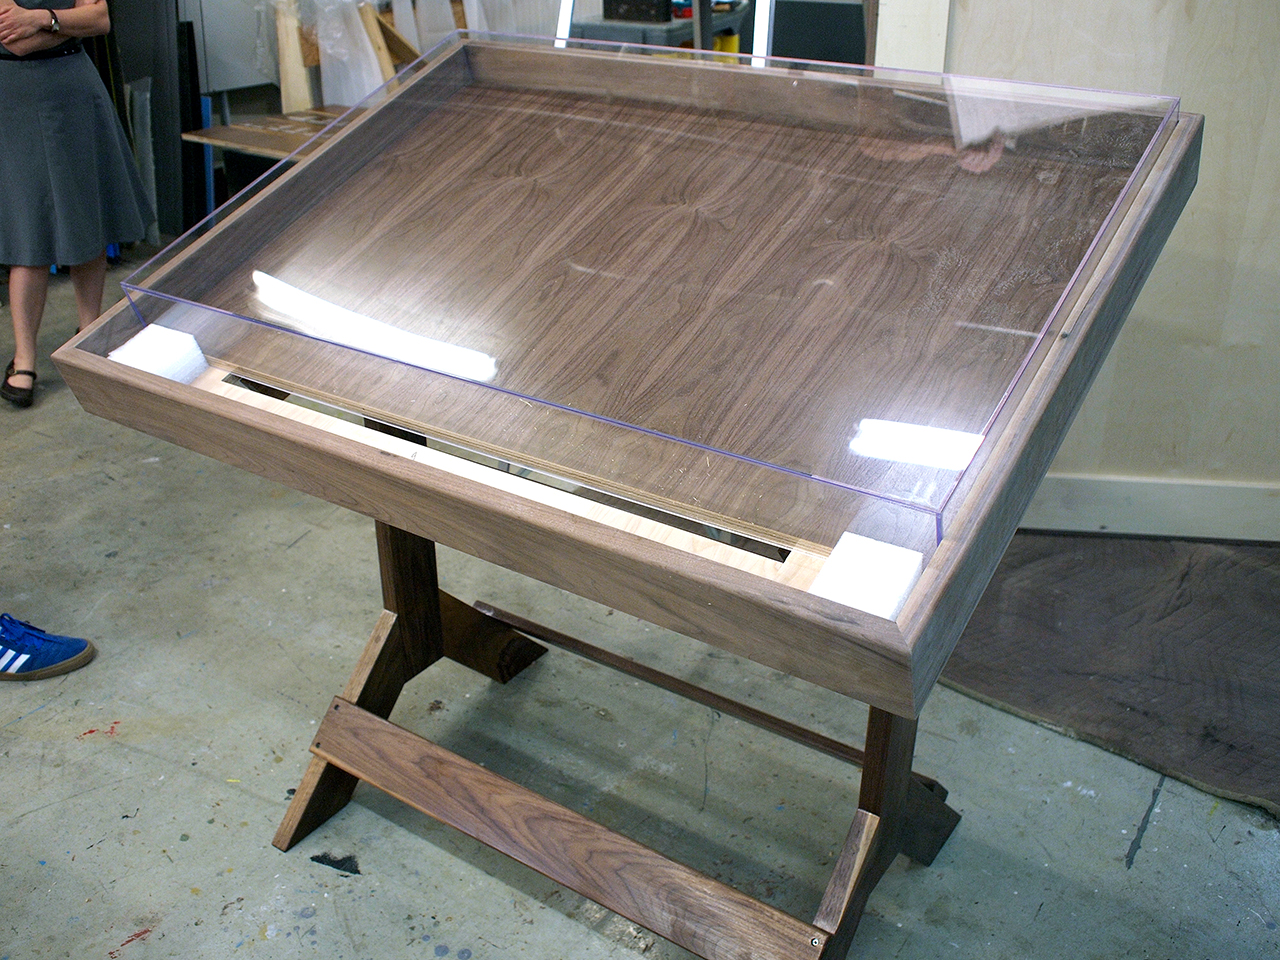 Table with acrylic box